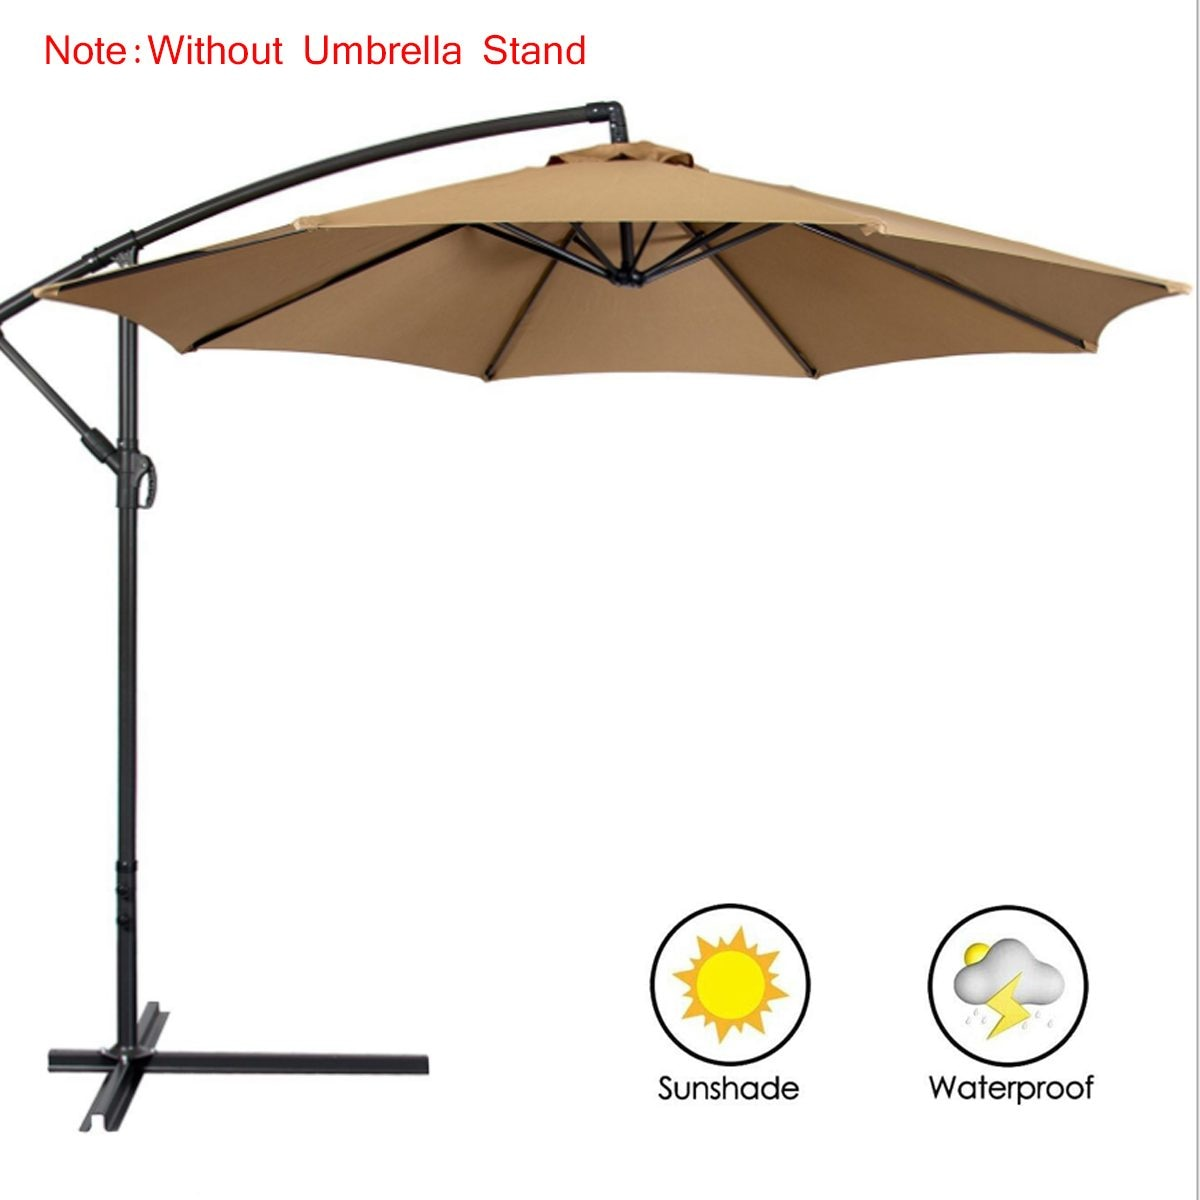 300x300CM Umbrella Cover Waterproof UV Protection Oxford sunshade Garden Patio Umbrella Cover sun Cantilever Cover Umbrella cove